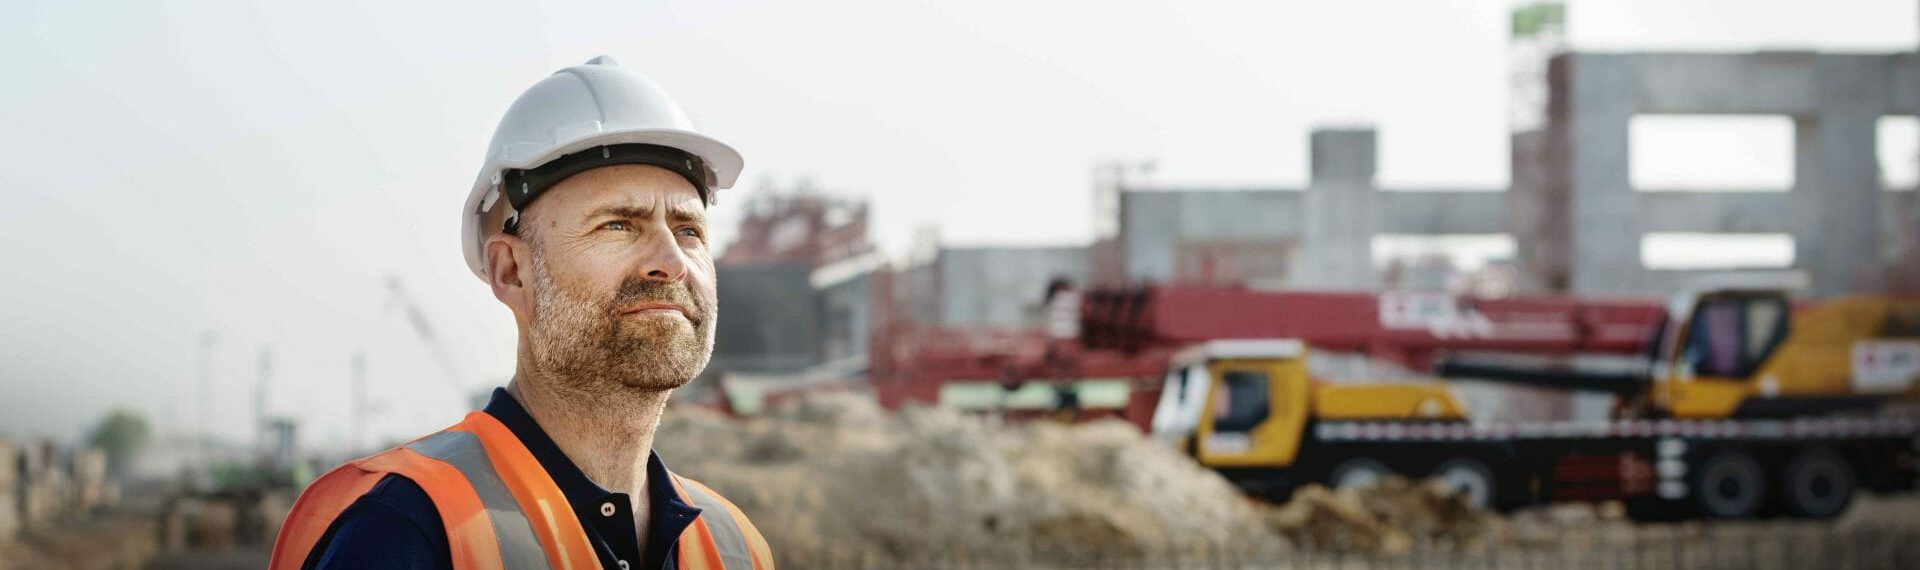 What requirements are there for getting Building Construction Insurance?